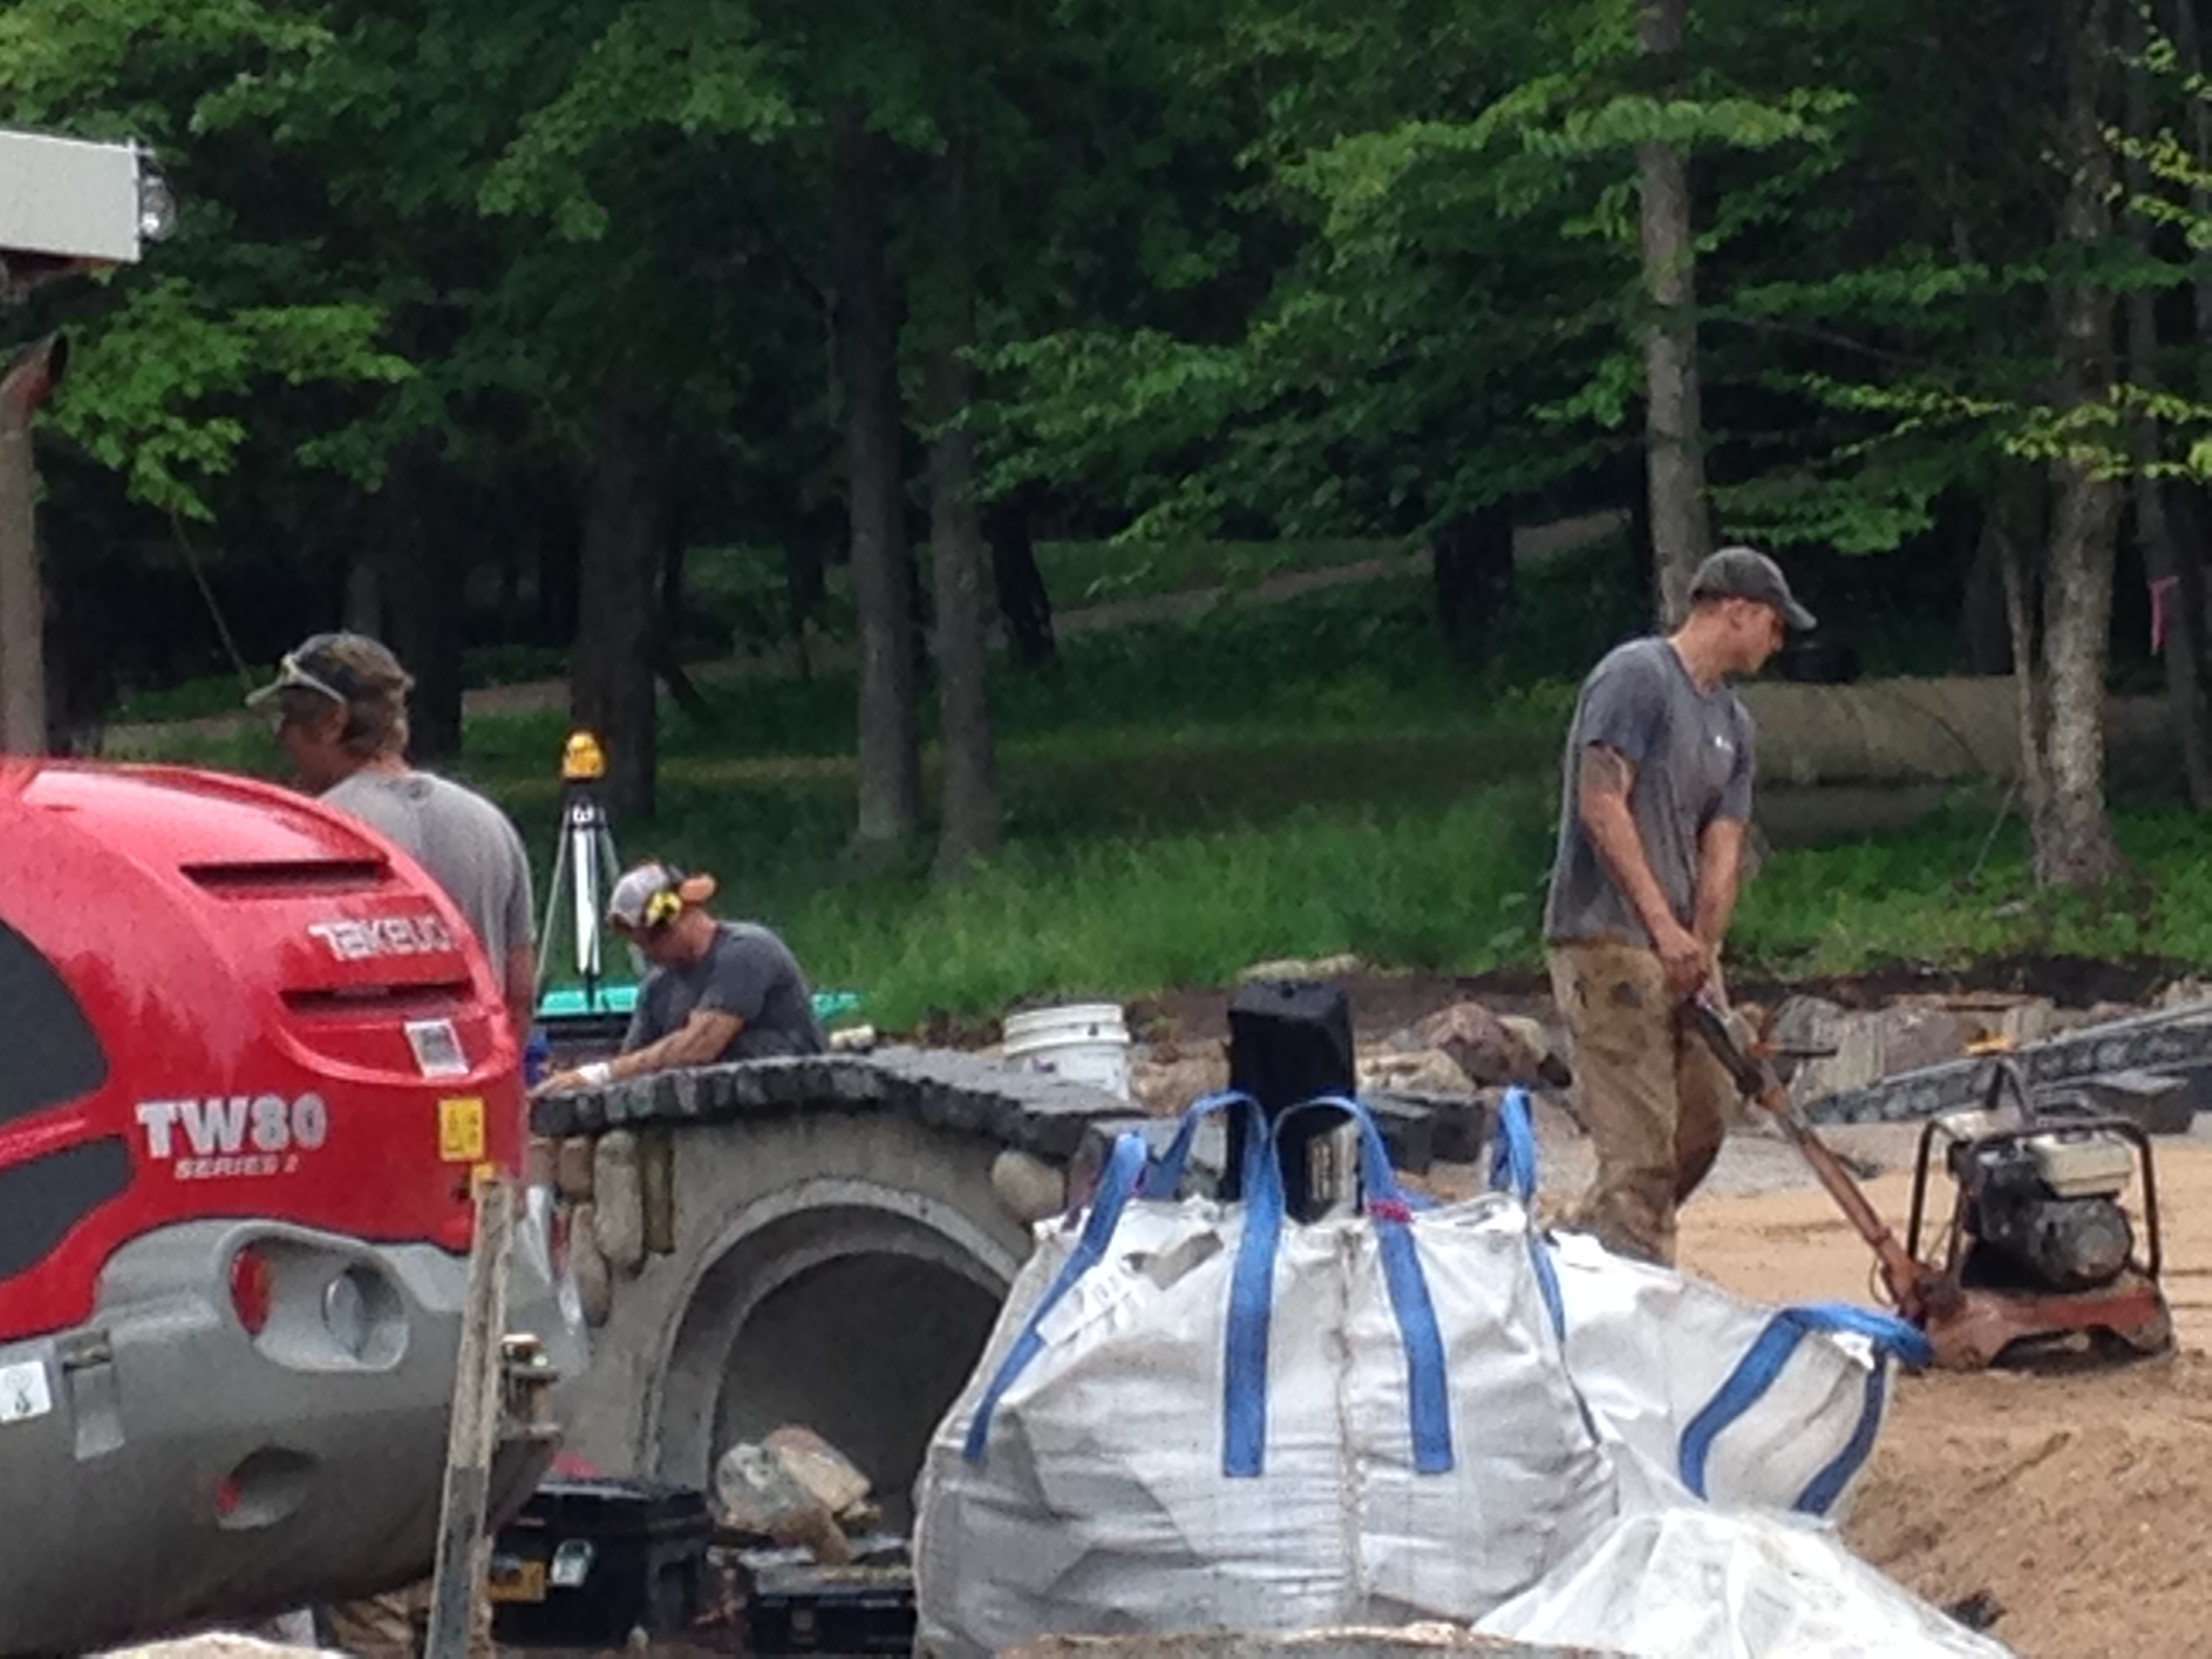 building a driveway bridge over a water feature - functional and strikingly beautiful